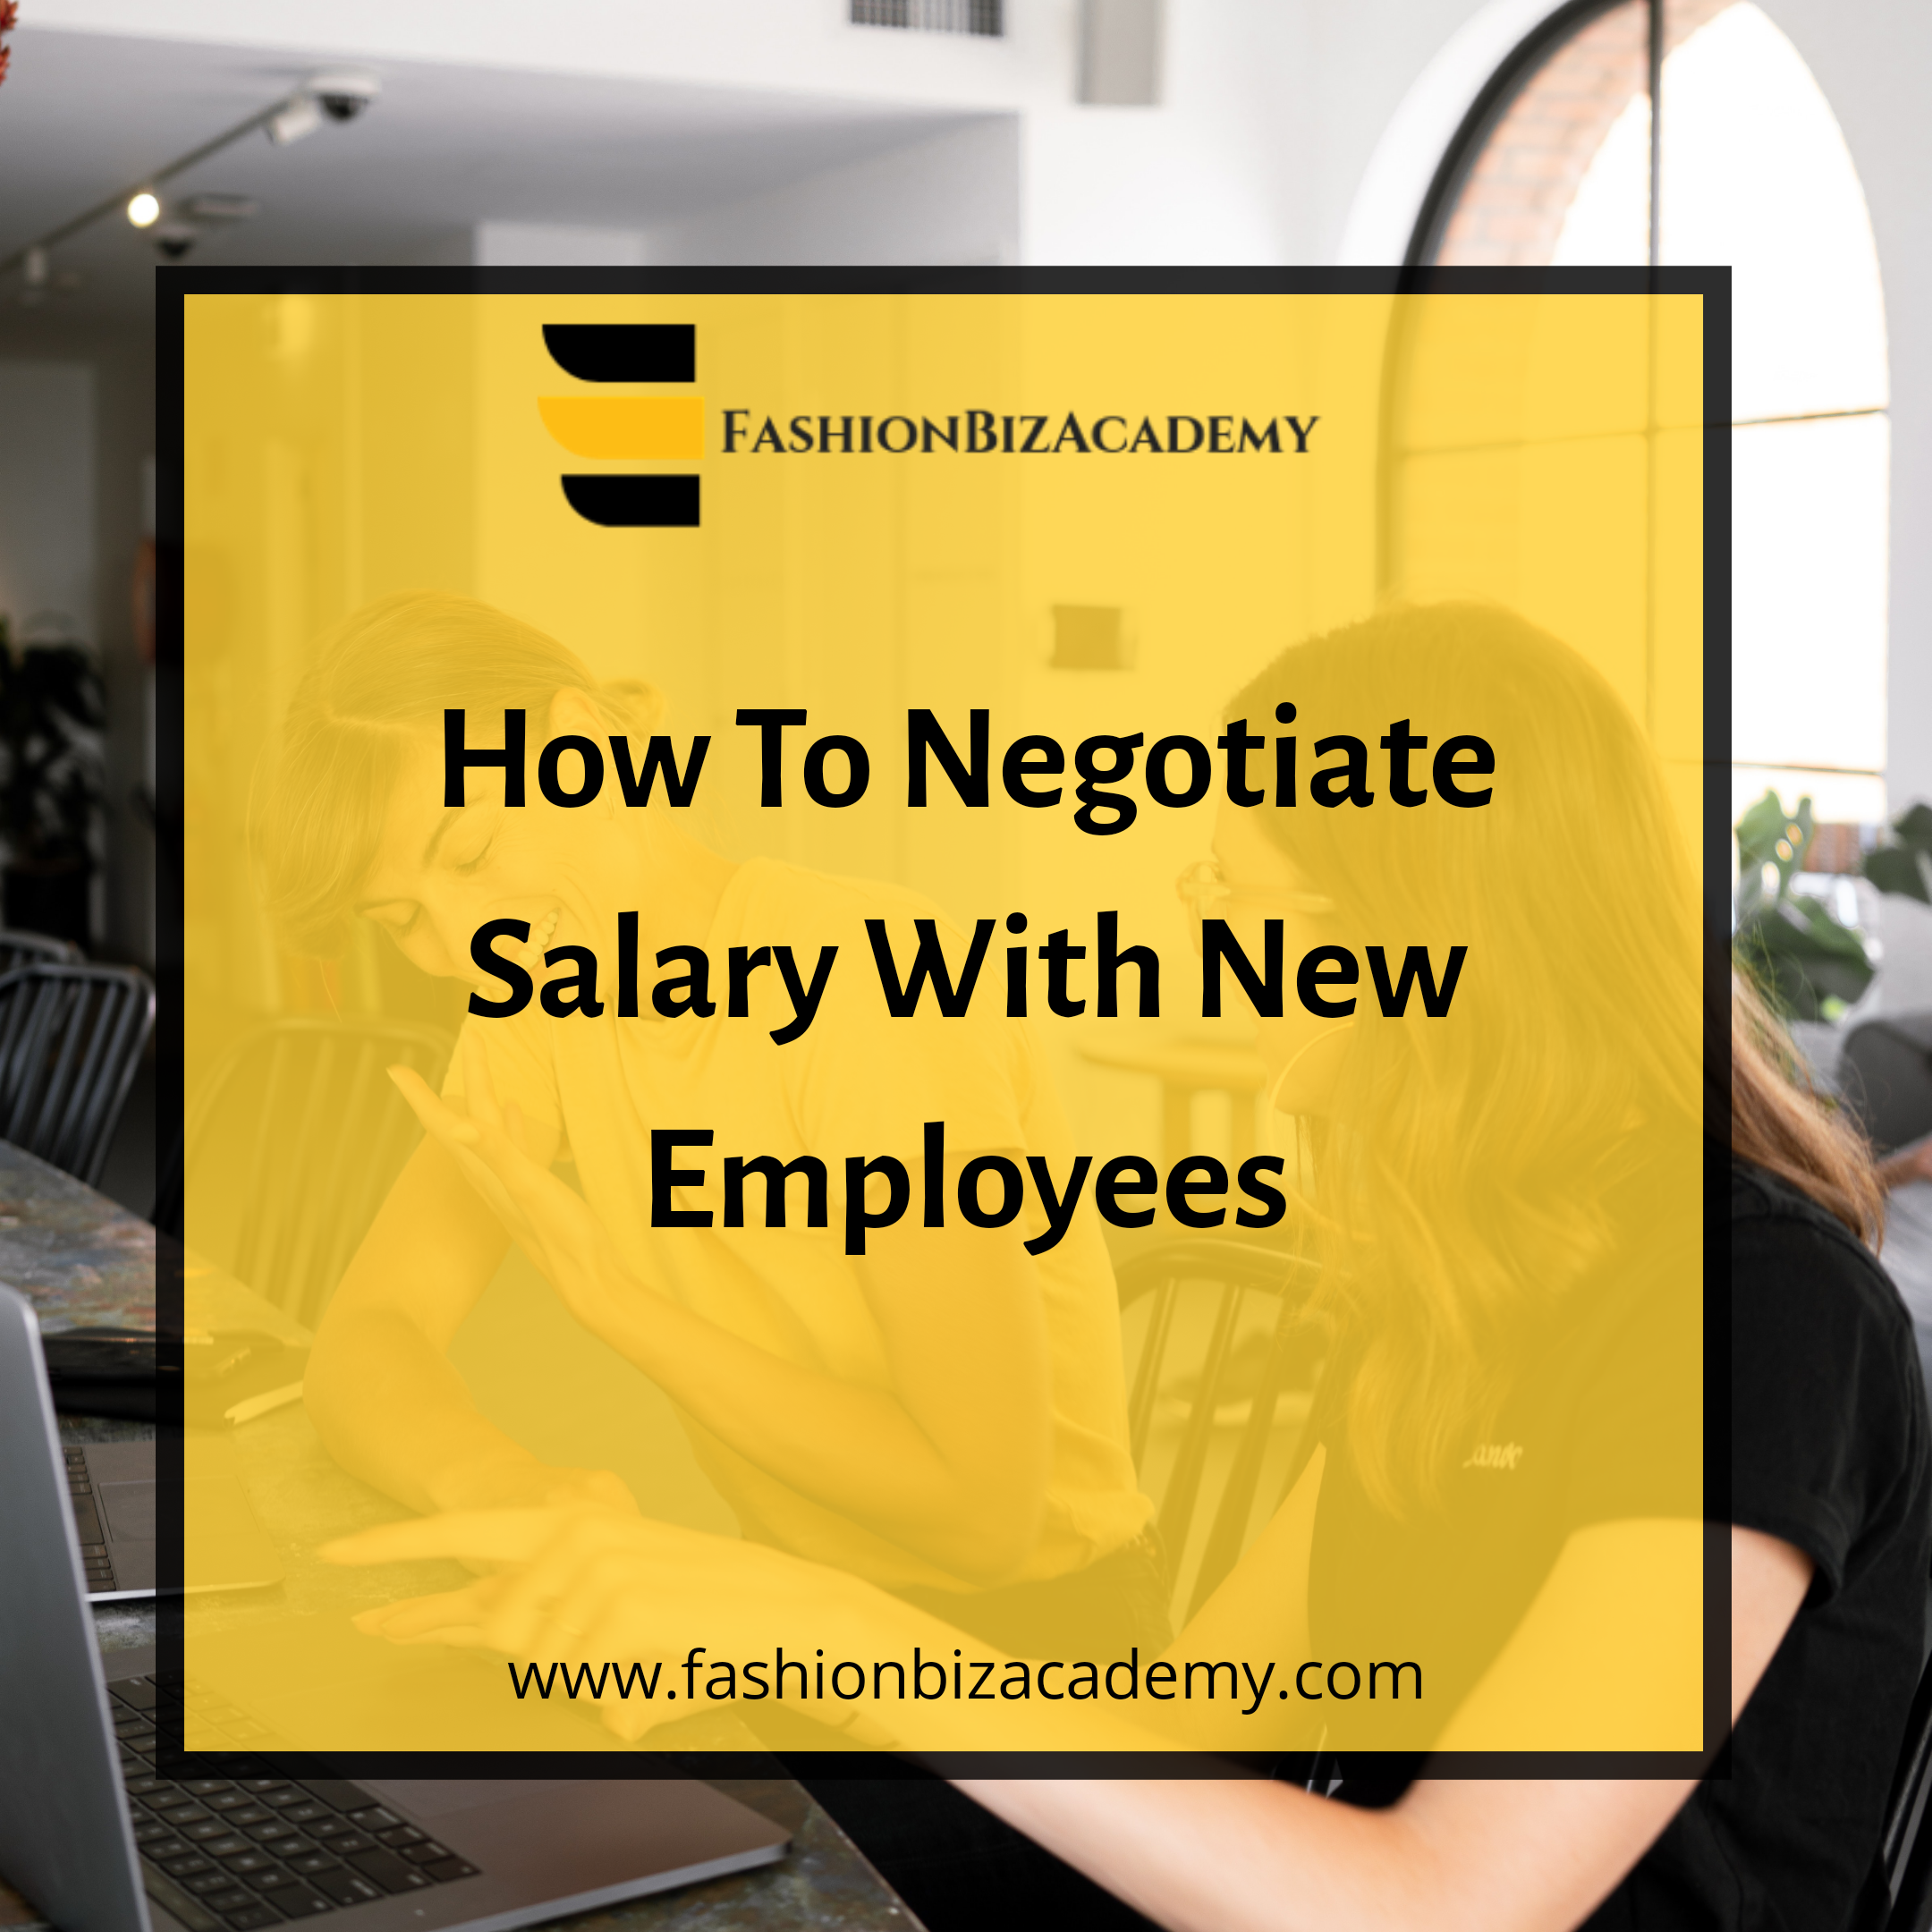 How to Negotiate Salary with New Employees